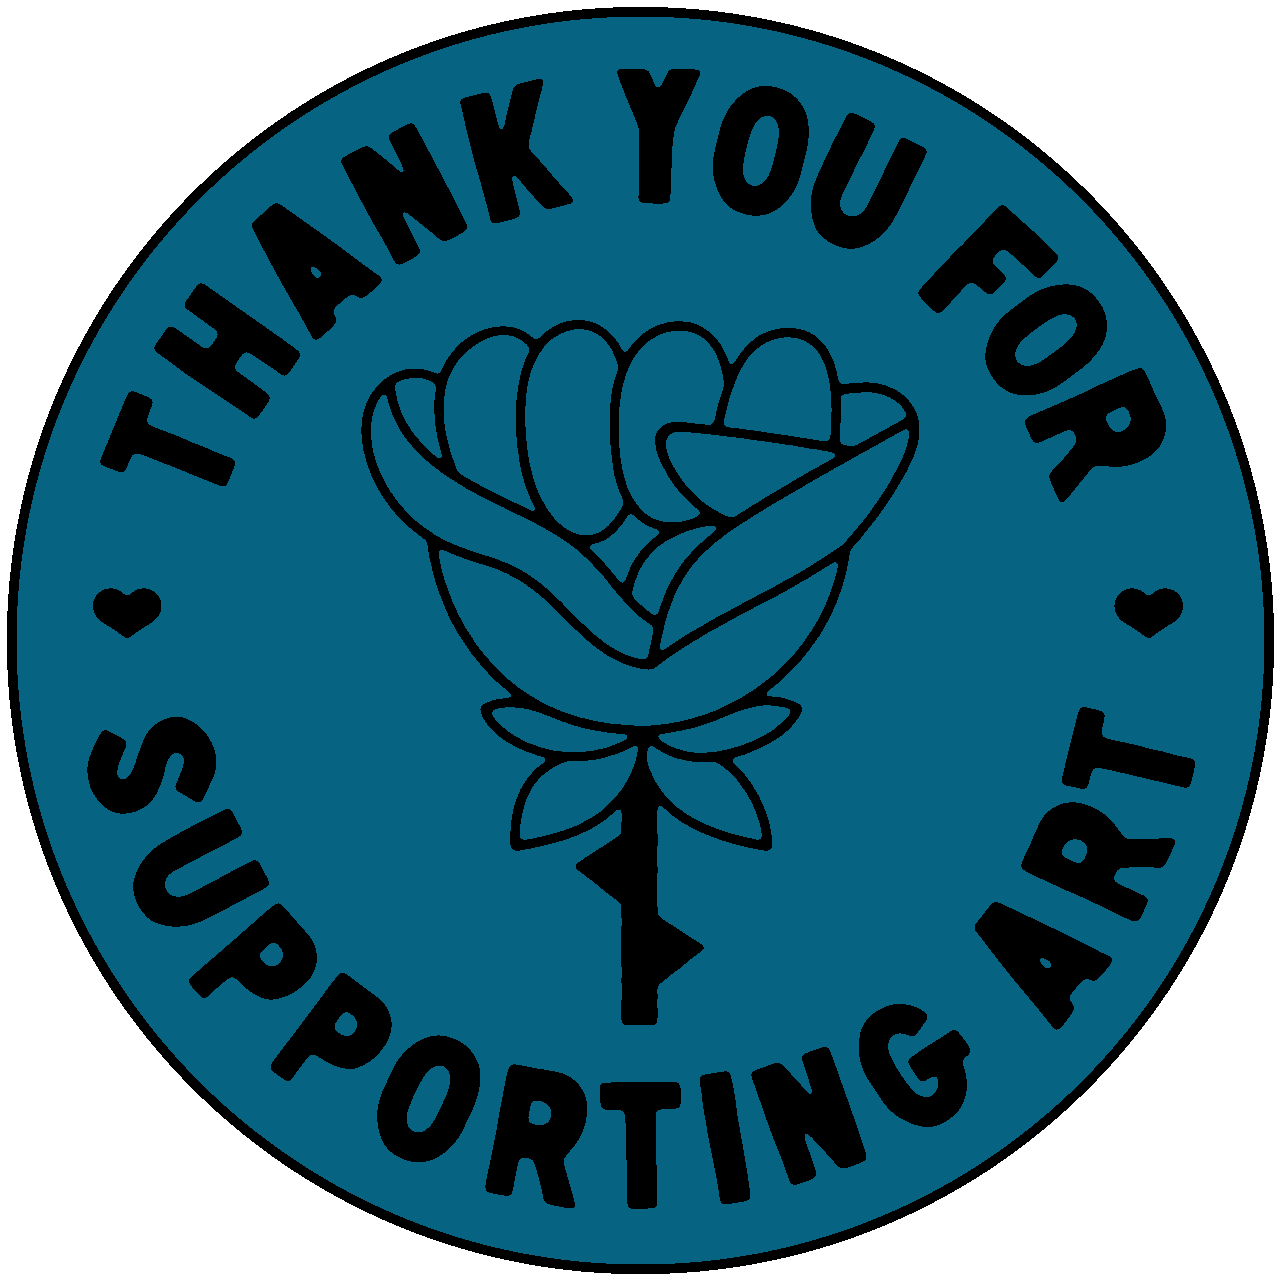 Thank-You-Sticker_Art_03